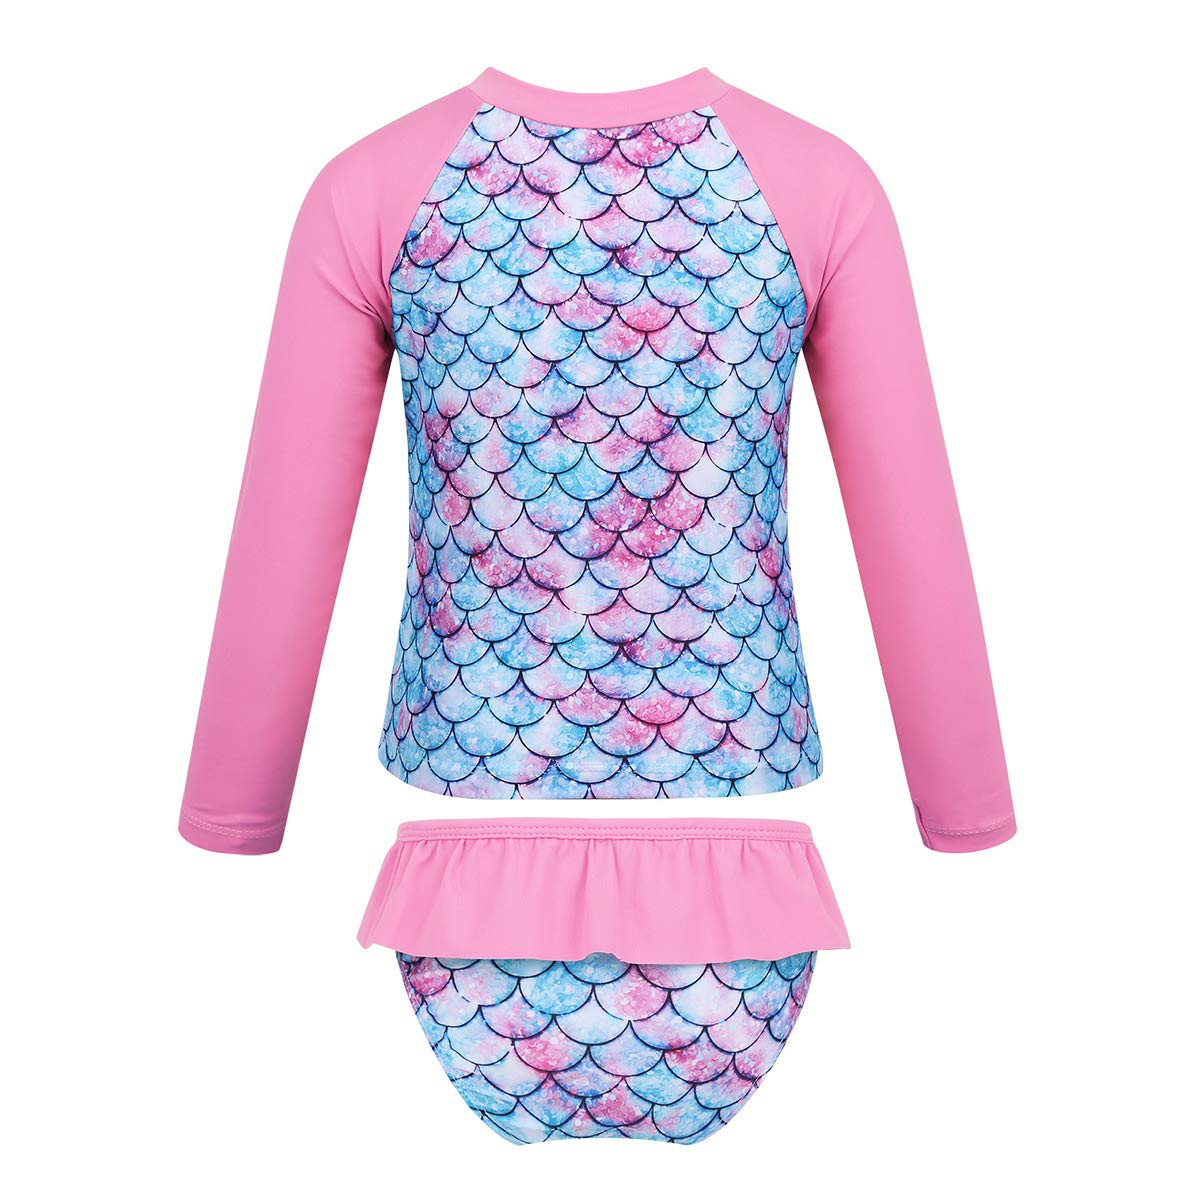 dPois Infant Baby Girls Long Sleeves One-Piece Floral Rash Guard Ruffles Swimsuit Swimwear with Back Zipper